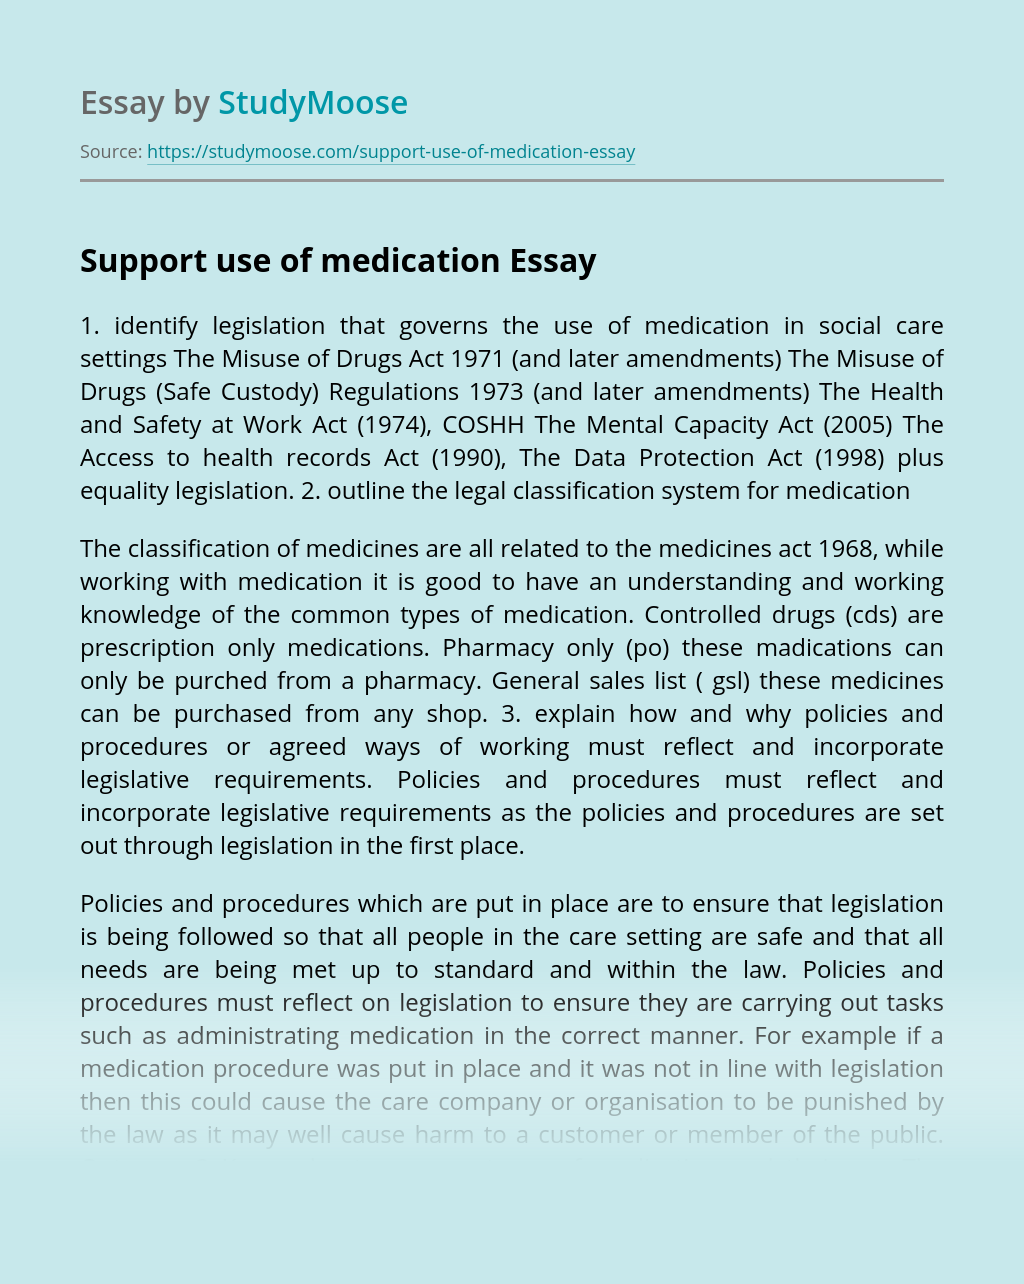 Support use of medication